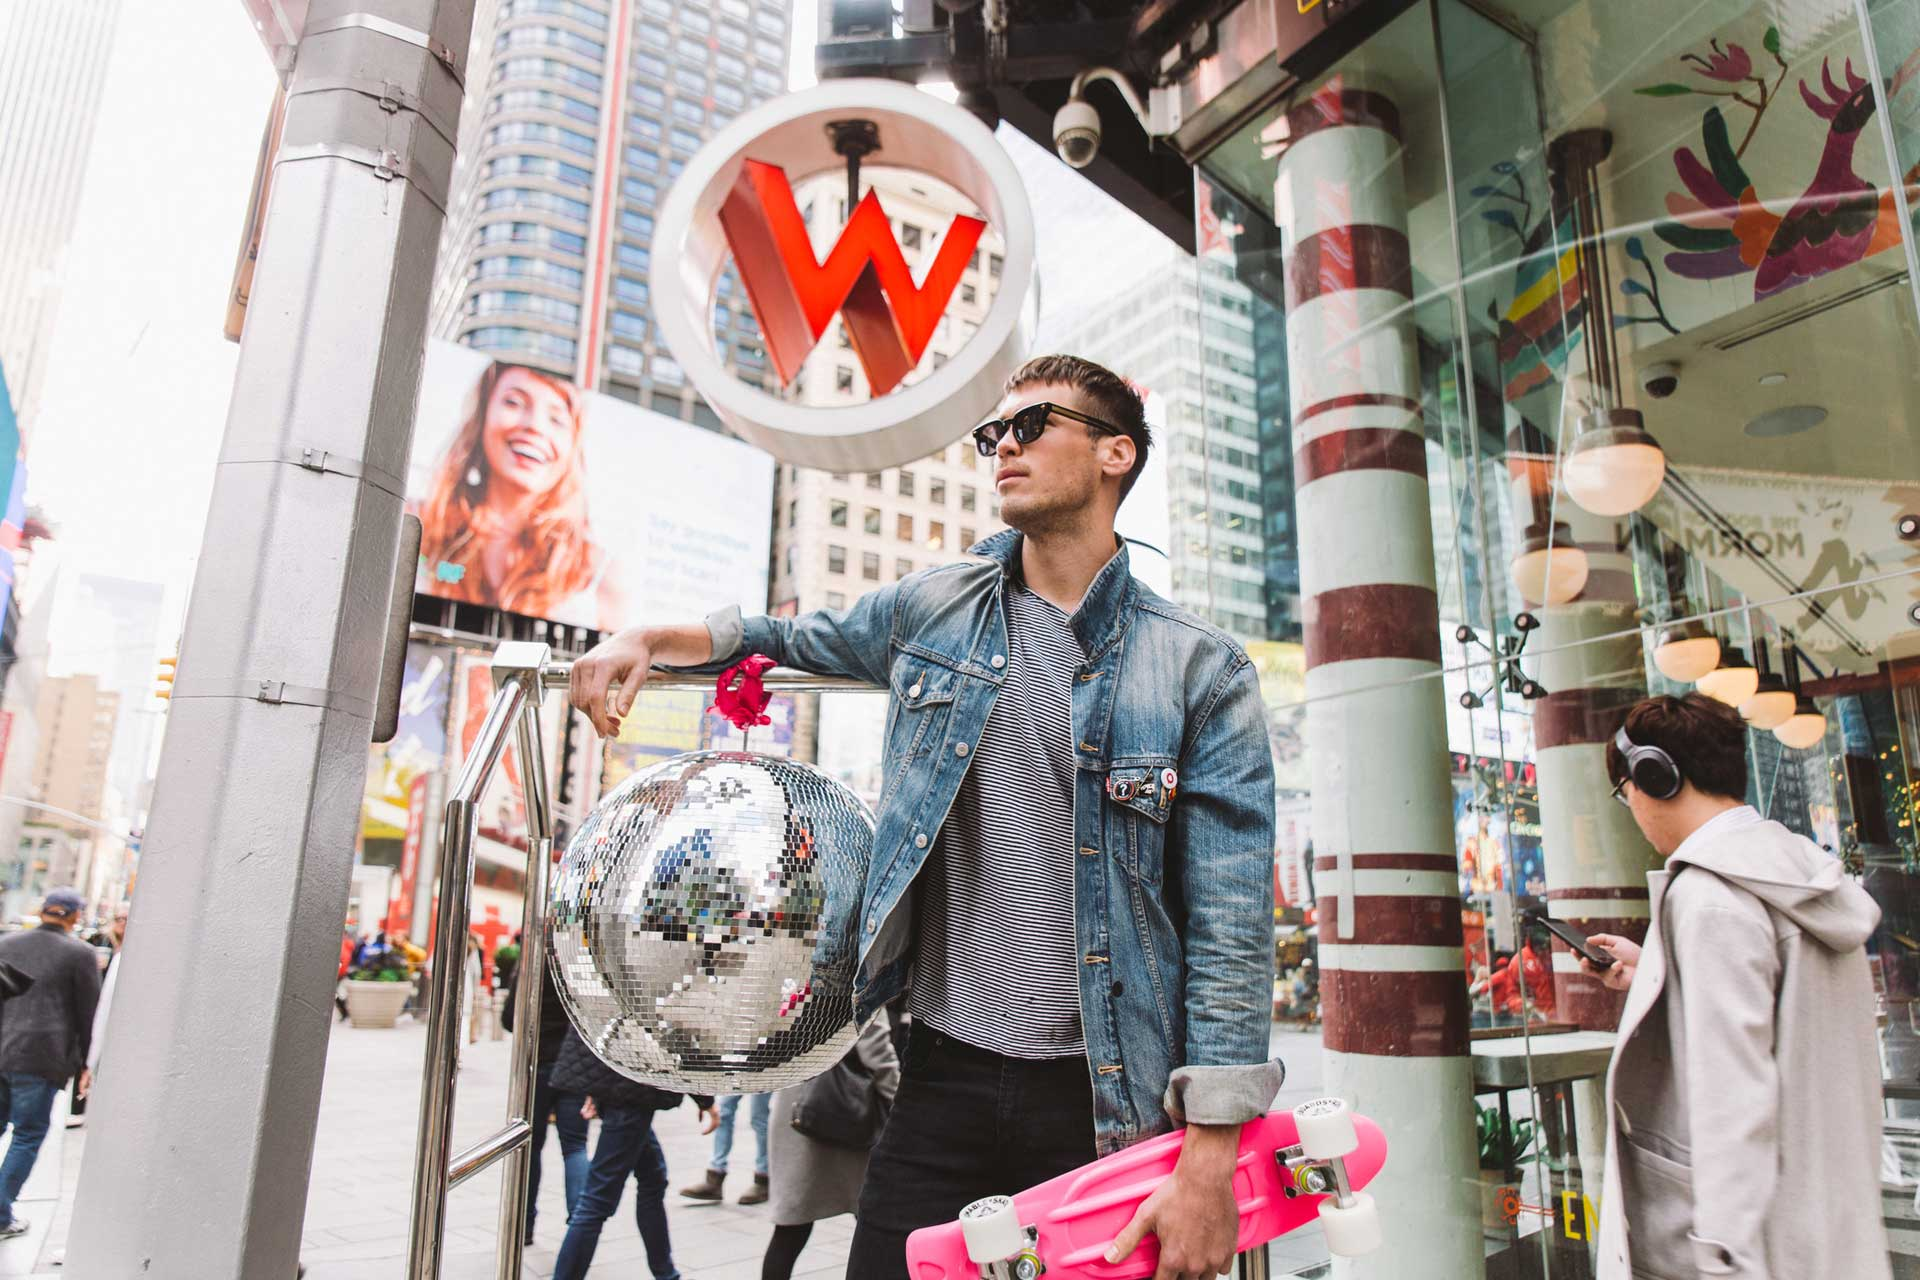 young man wearing sunglasses and denim jacket and holding pink skateboard outside of w hotel in new york